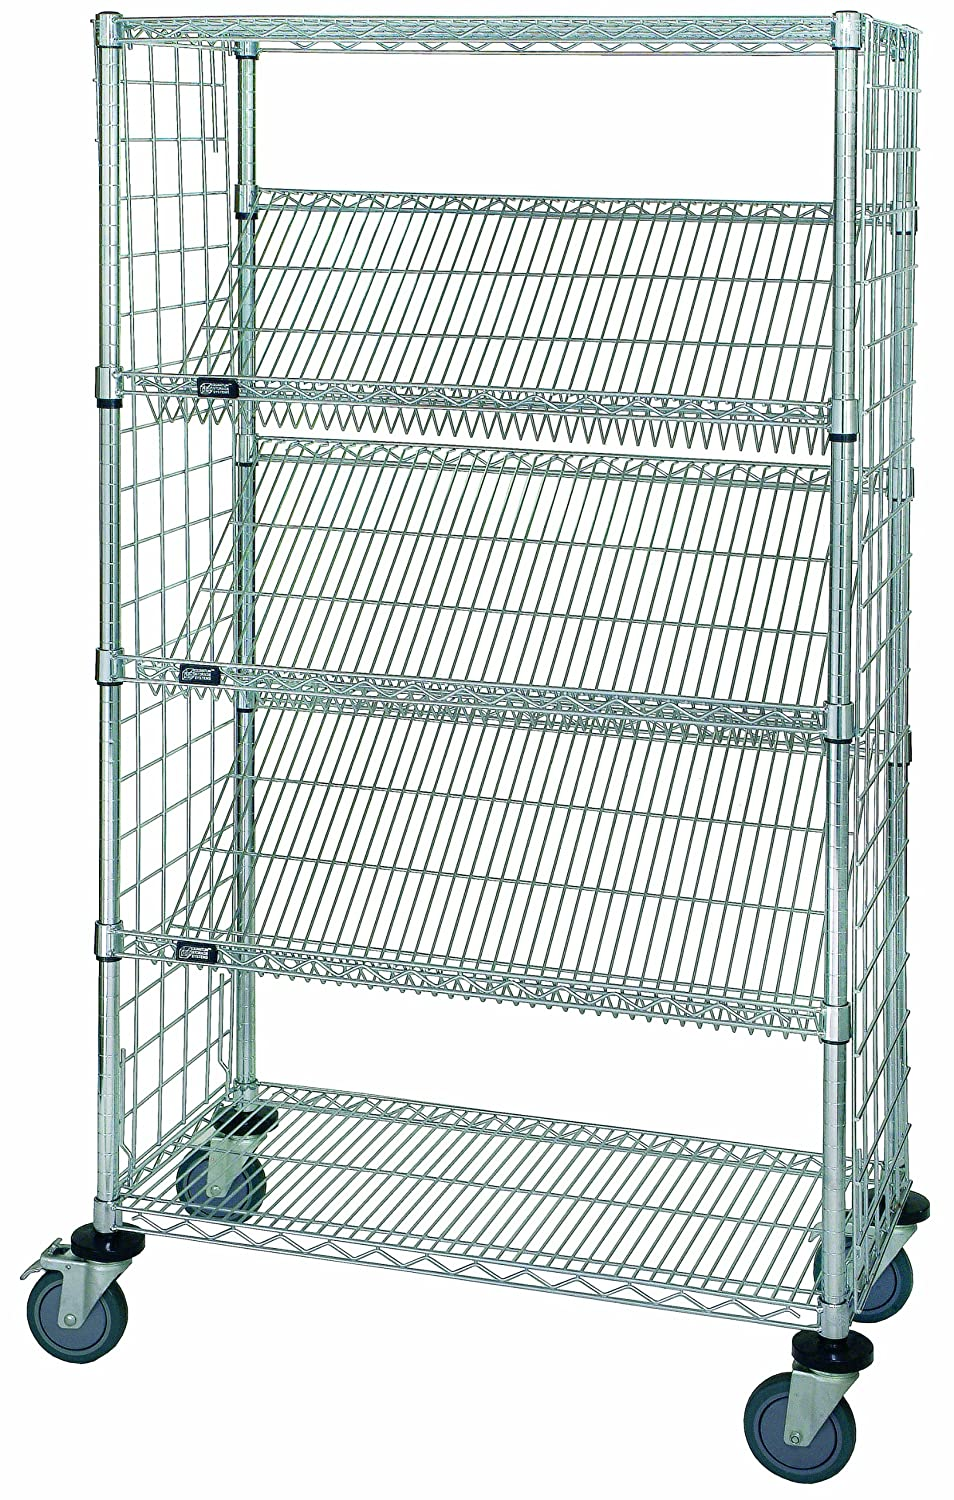 """Quantum Storage Systems Wrcsl5-63-1836ep 5-tier Slanted Wire Shelving  Suture Cart, Enclosed, 2 Horizontal And 3 Slanted Shelves, Chrome Finish,  69"""""""